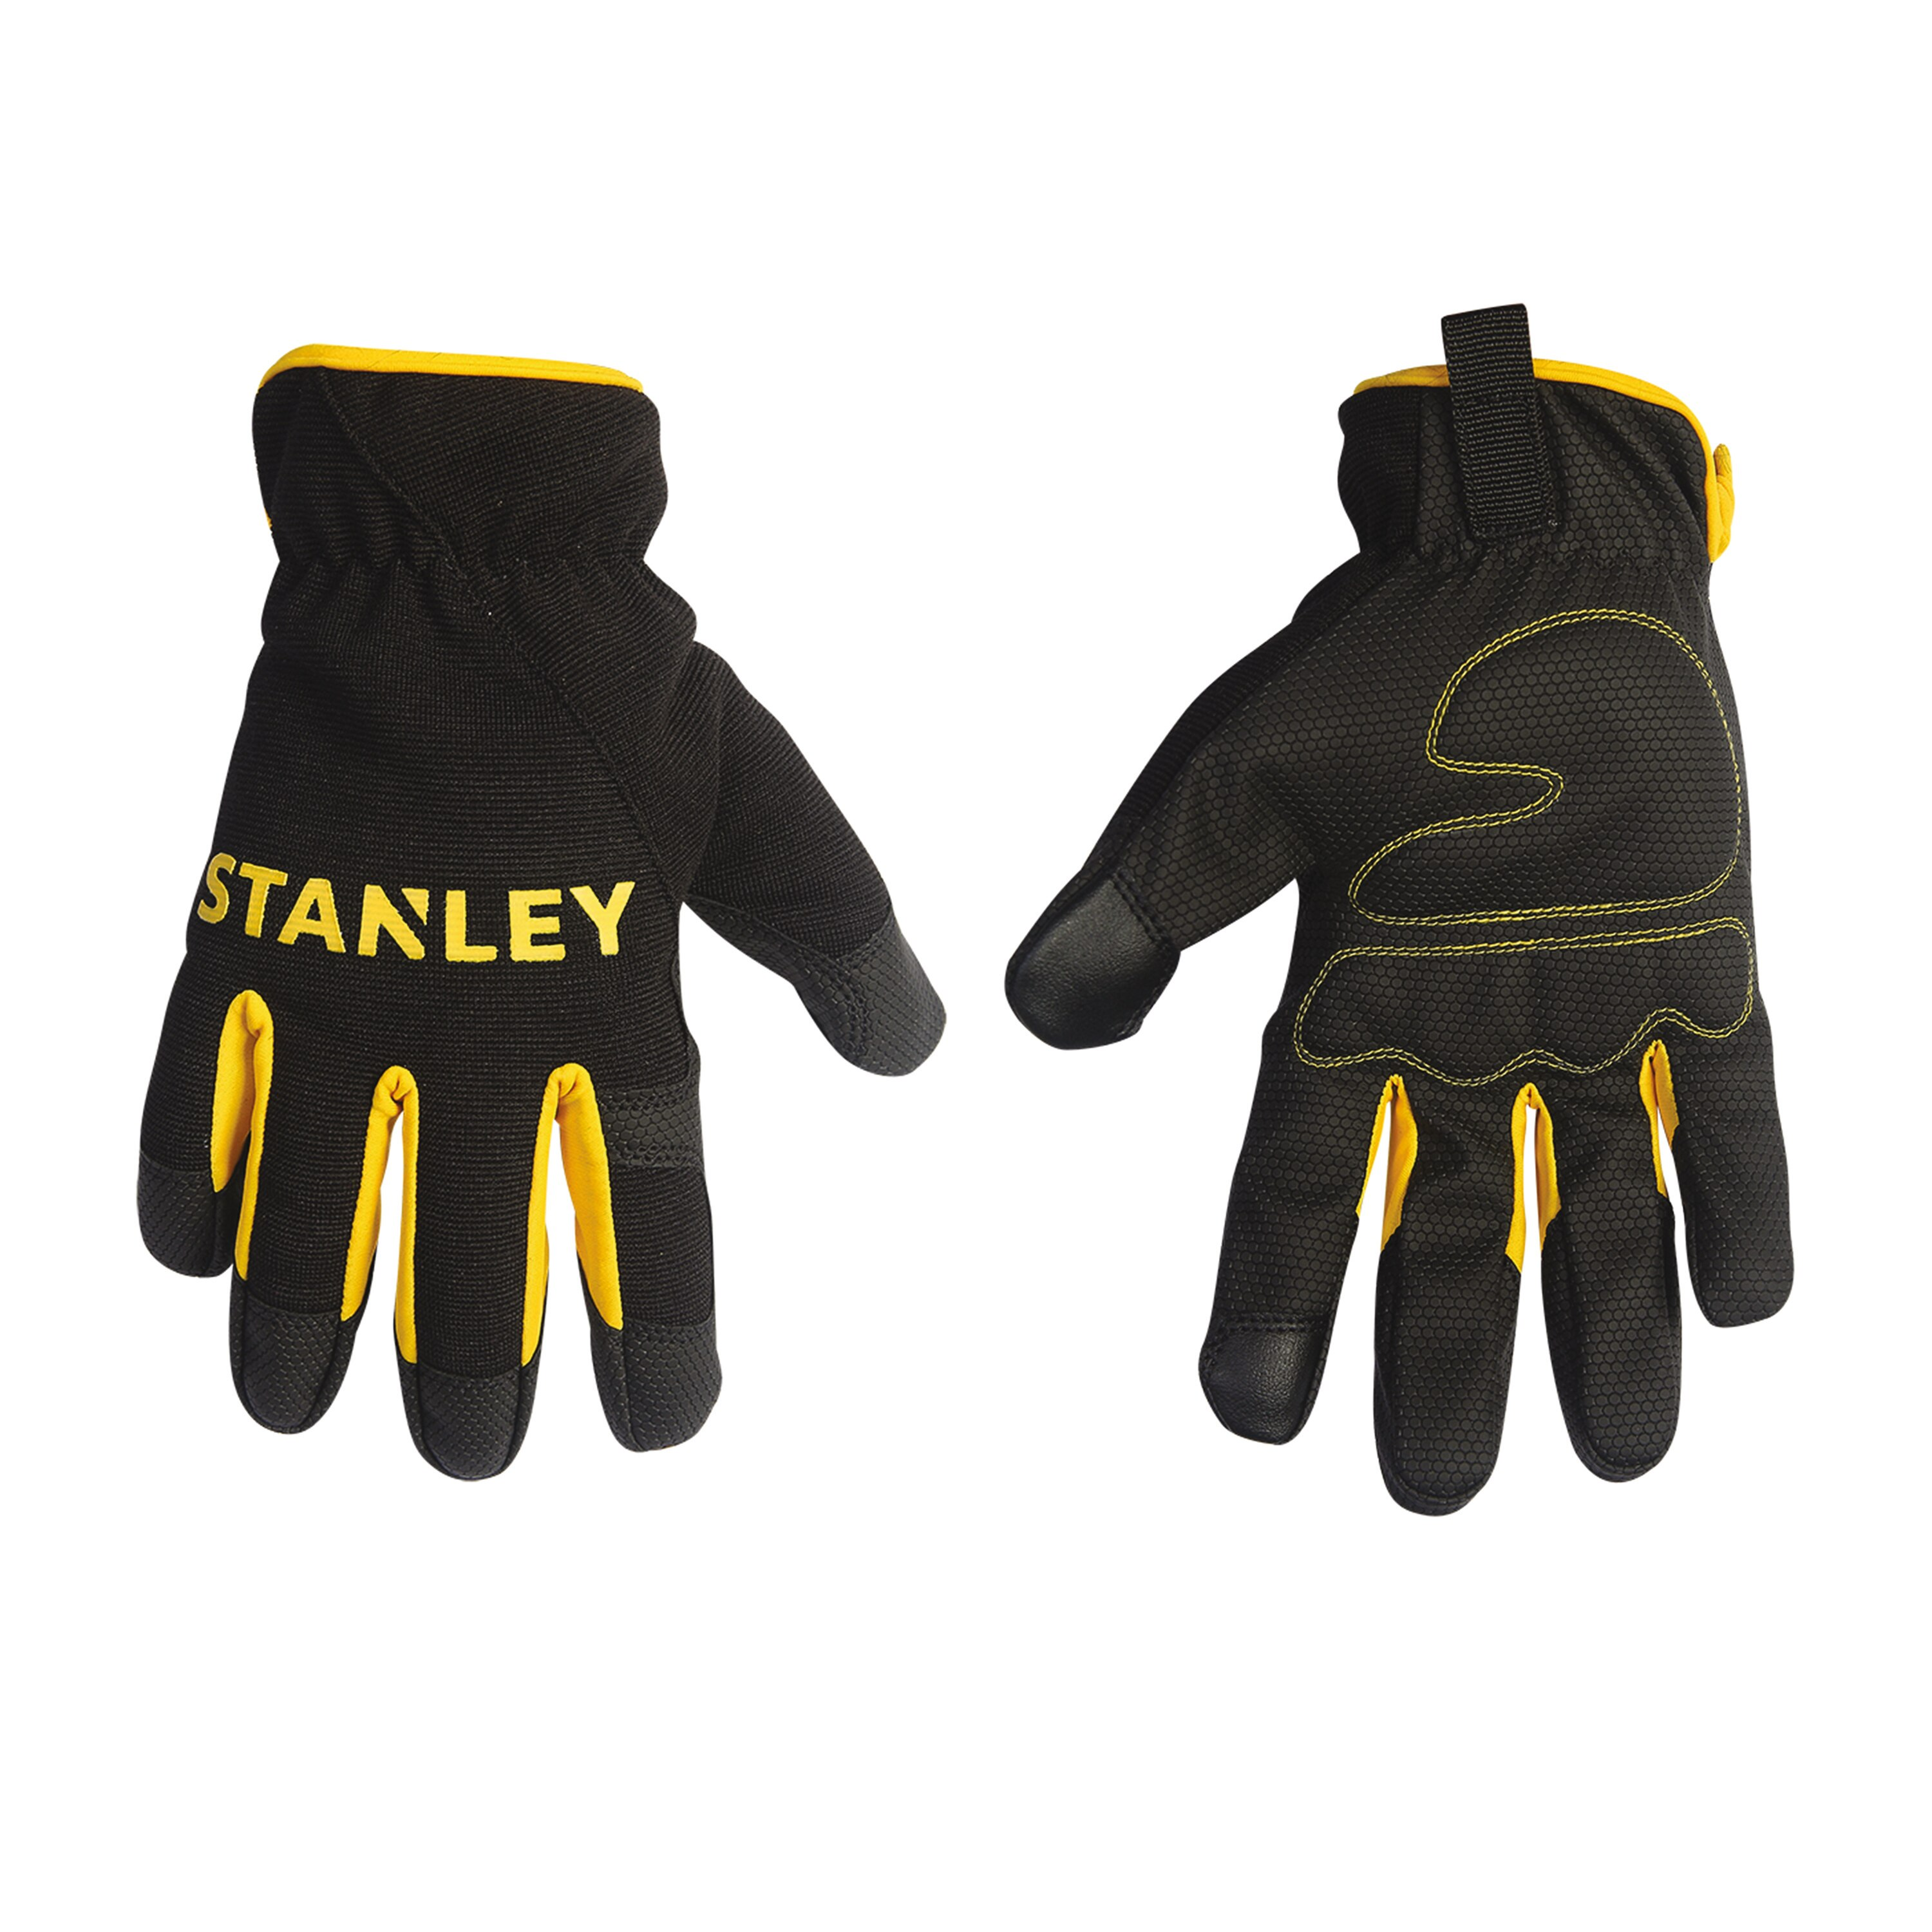 Stanley Tools - General Purpose Touchscreen Gloves - S77632